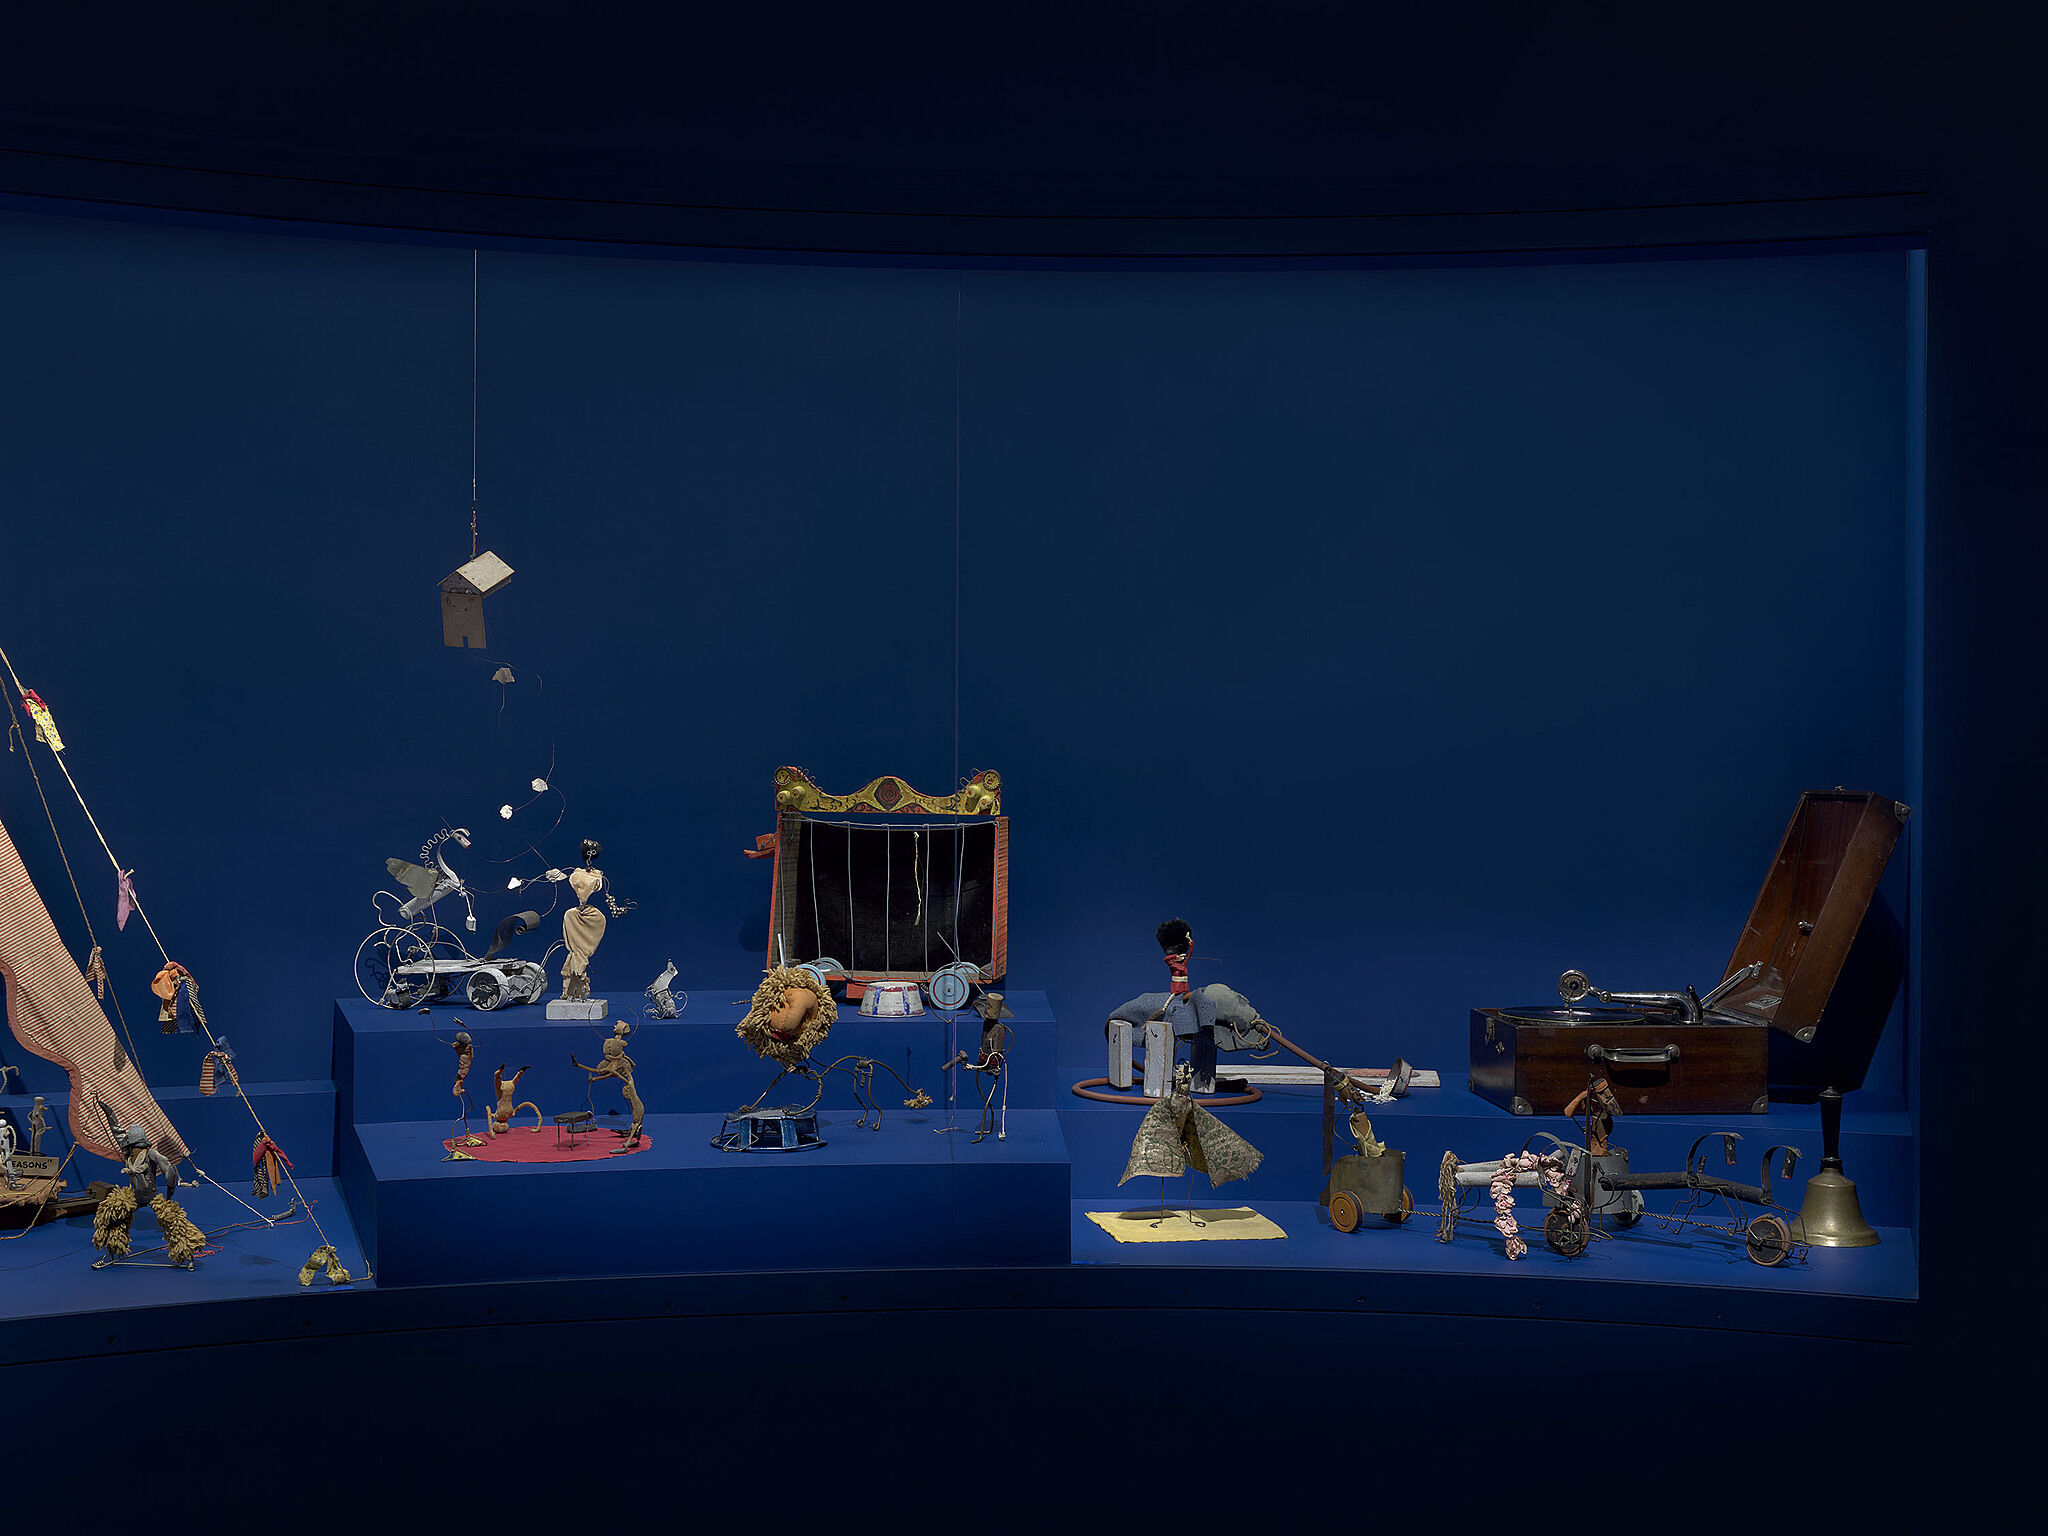 An image of small wire sculptures in an exhibition case